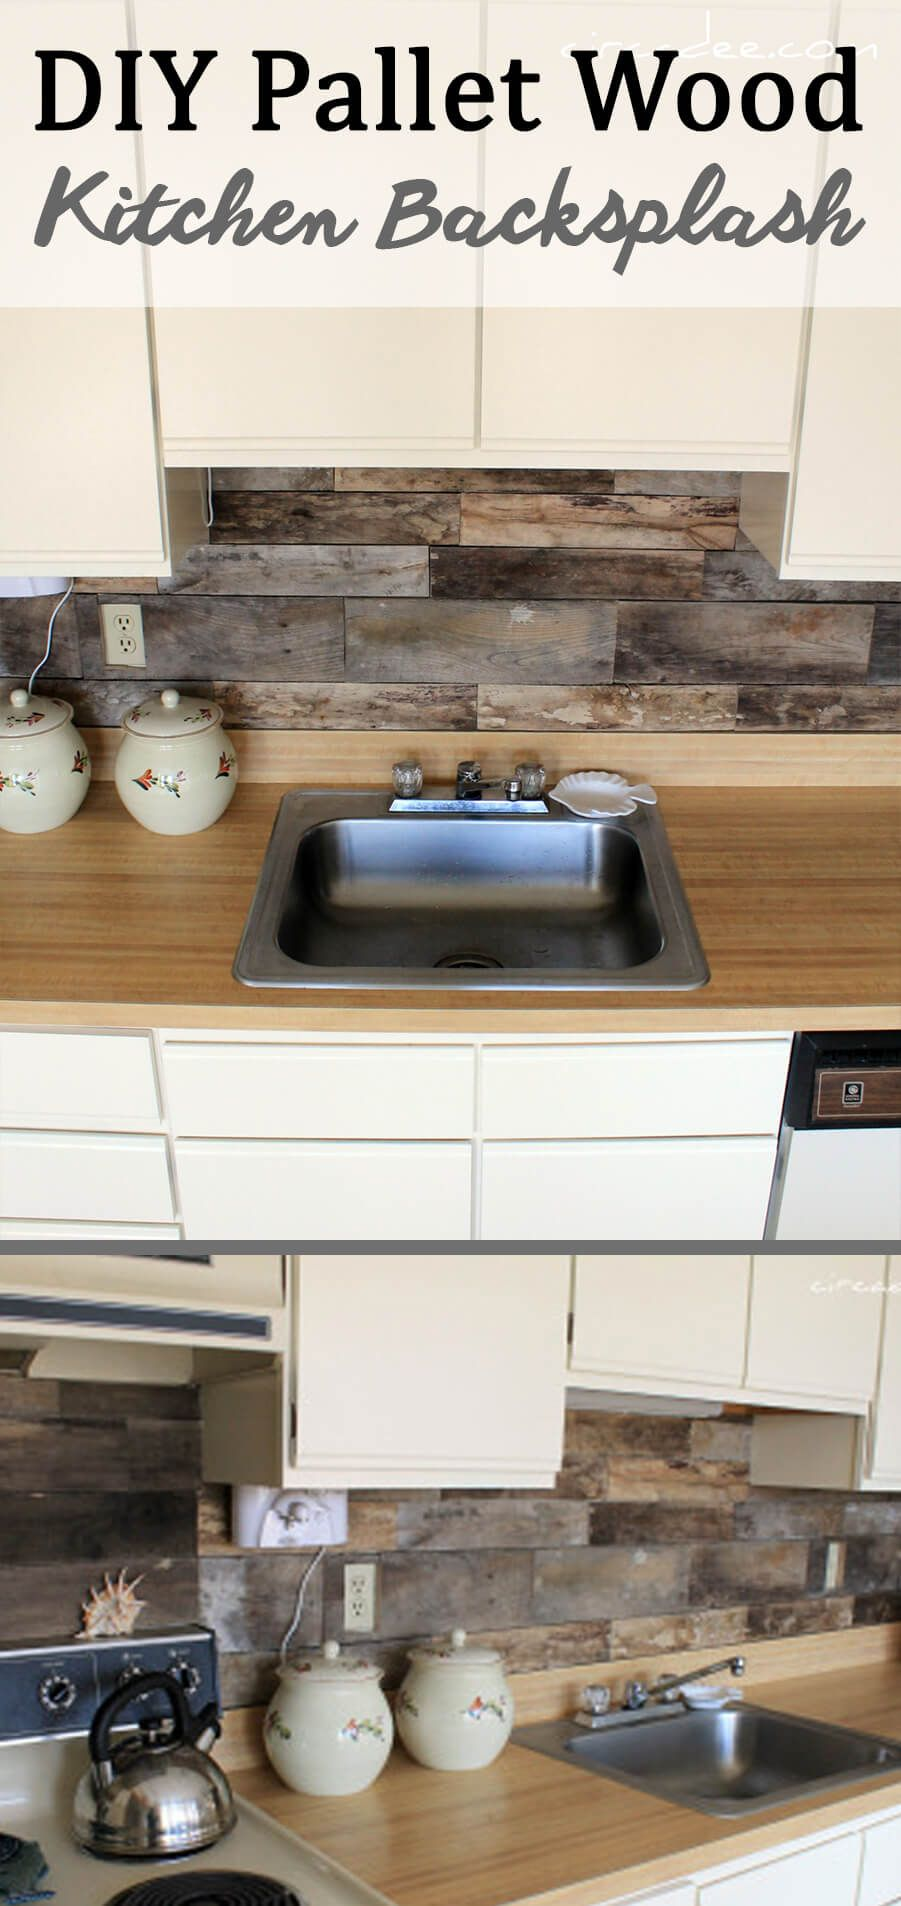 25+ Easy DIY Kitchen Backsplash Ideas To Breathe New Life Into Your Kitchen